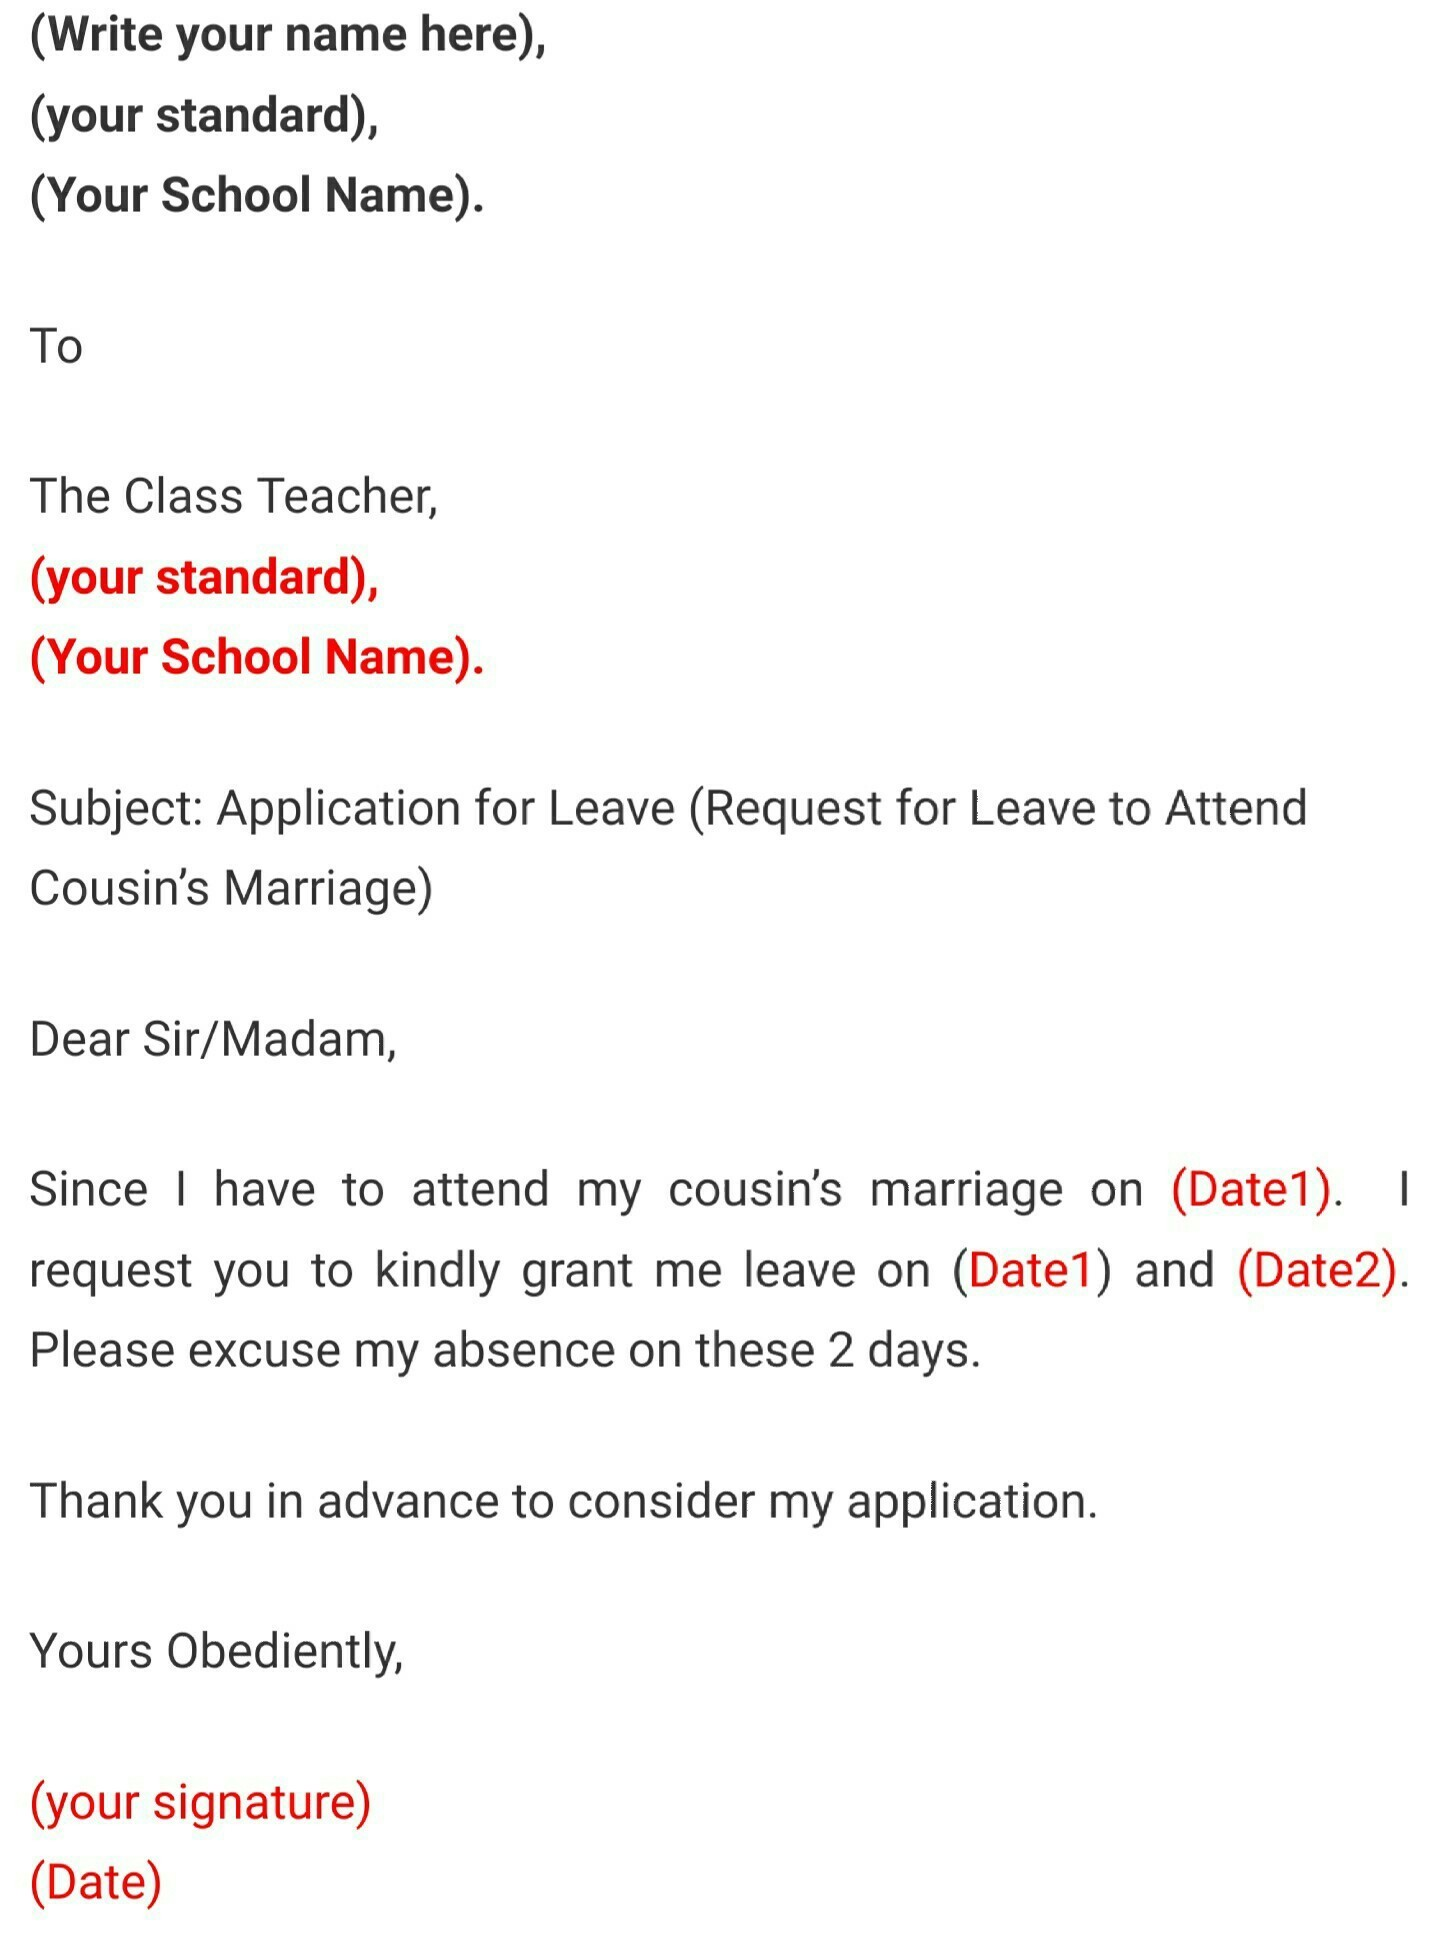 Leave Application For School For Marriage